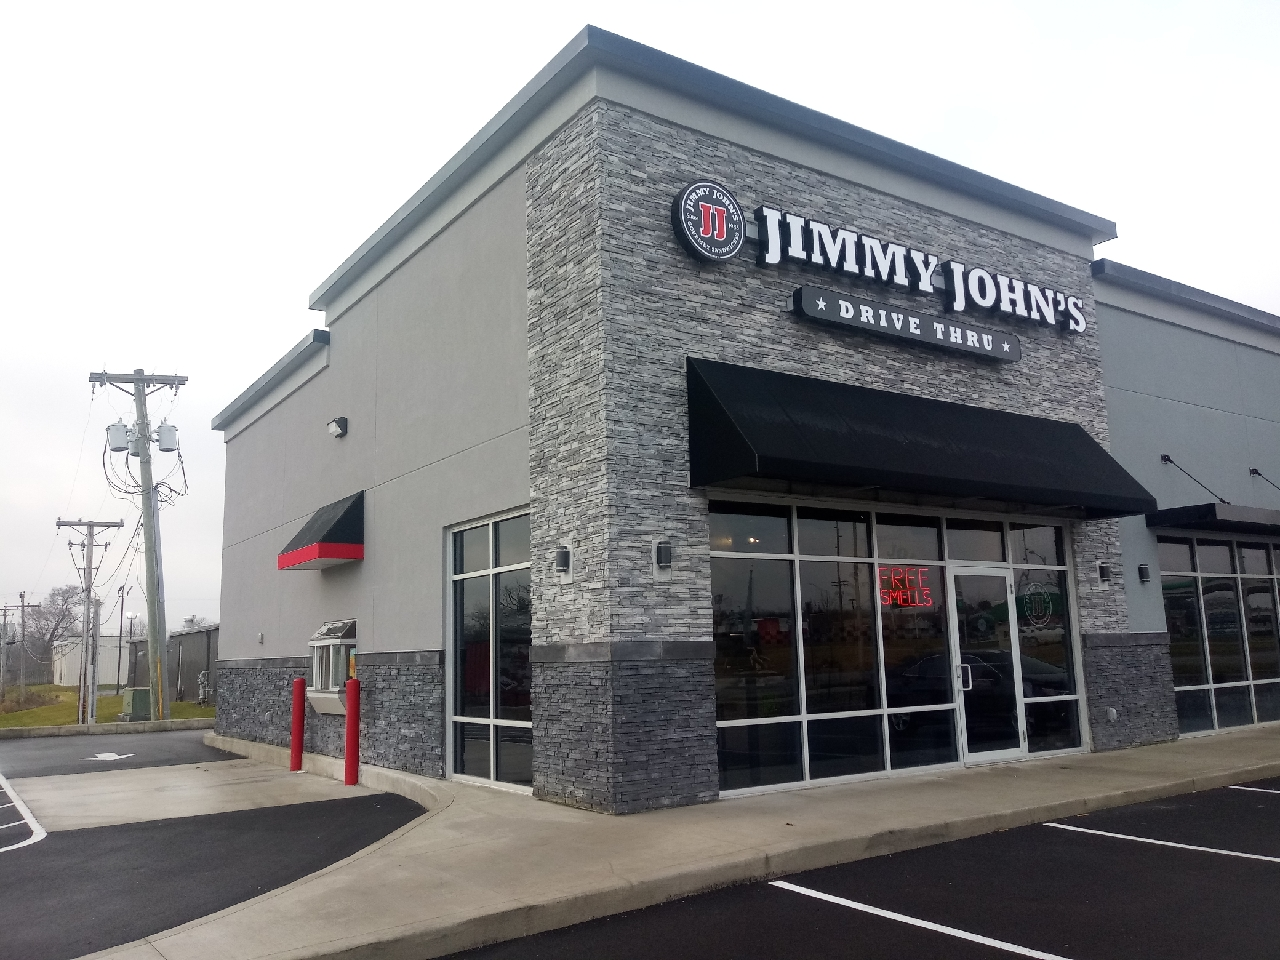 Columbia City Jimmy Johns